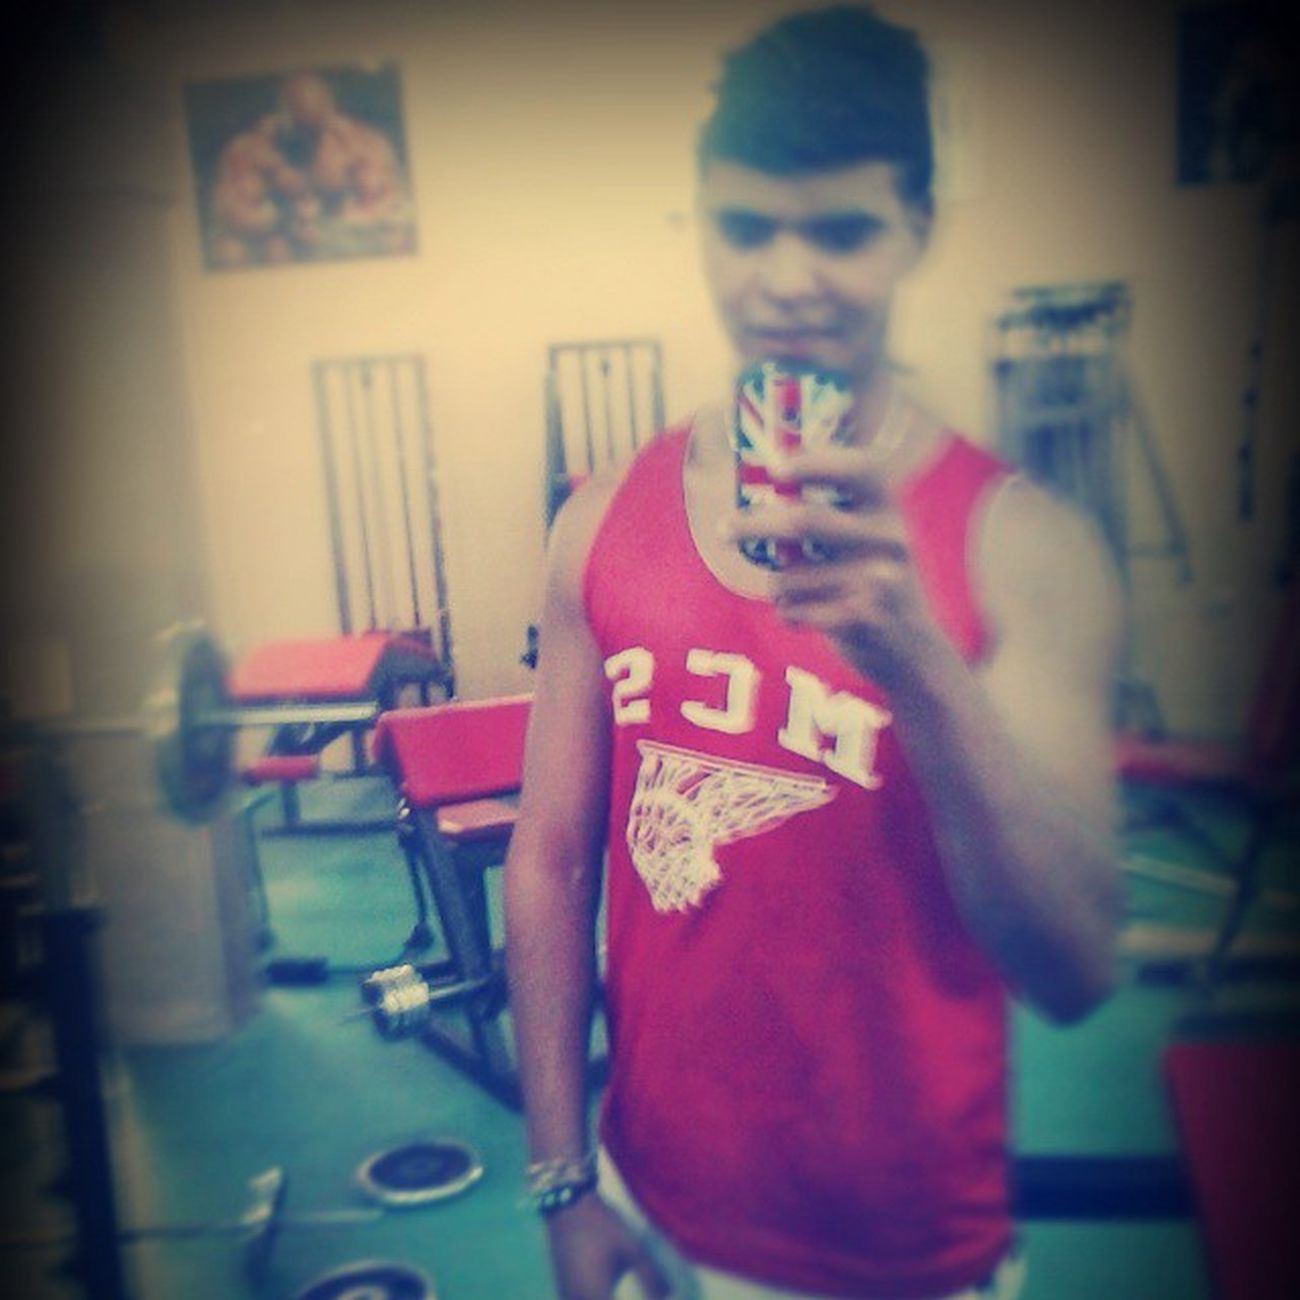 Home Gymday Enjoy Feeling : Great <3